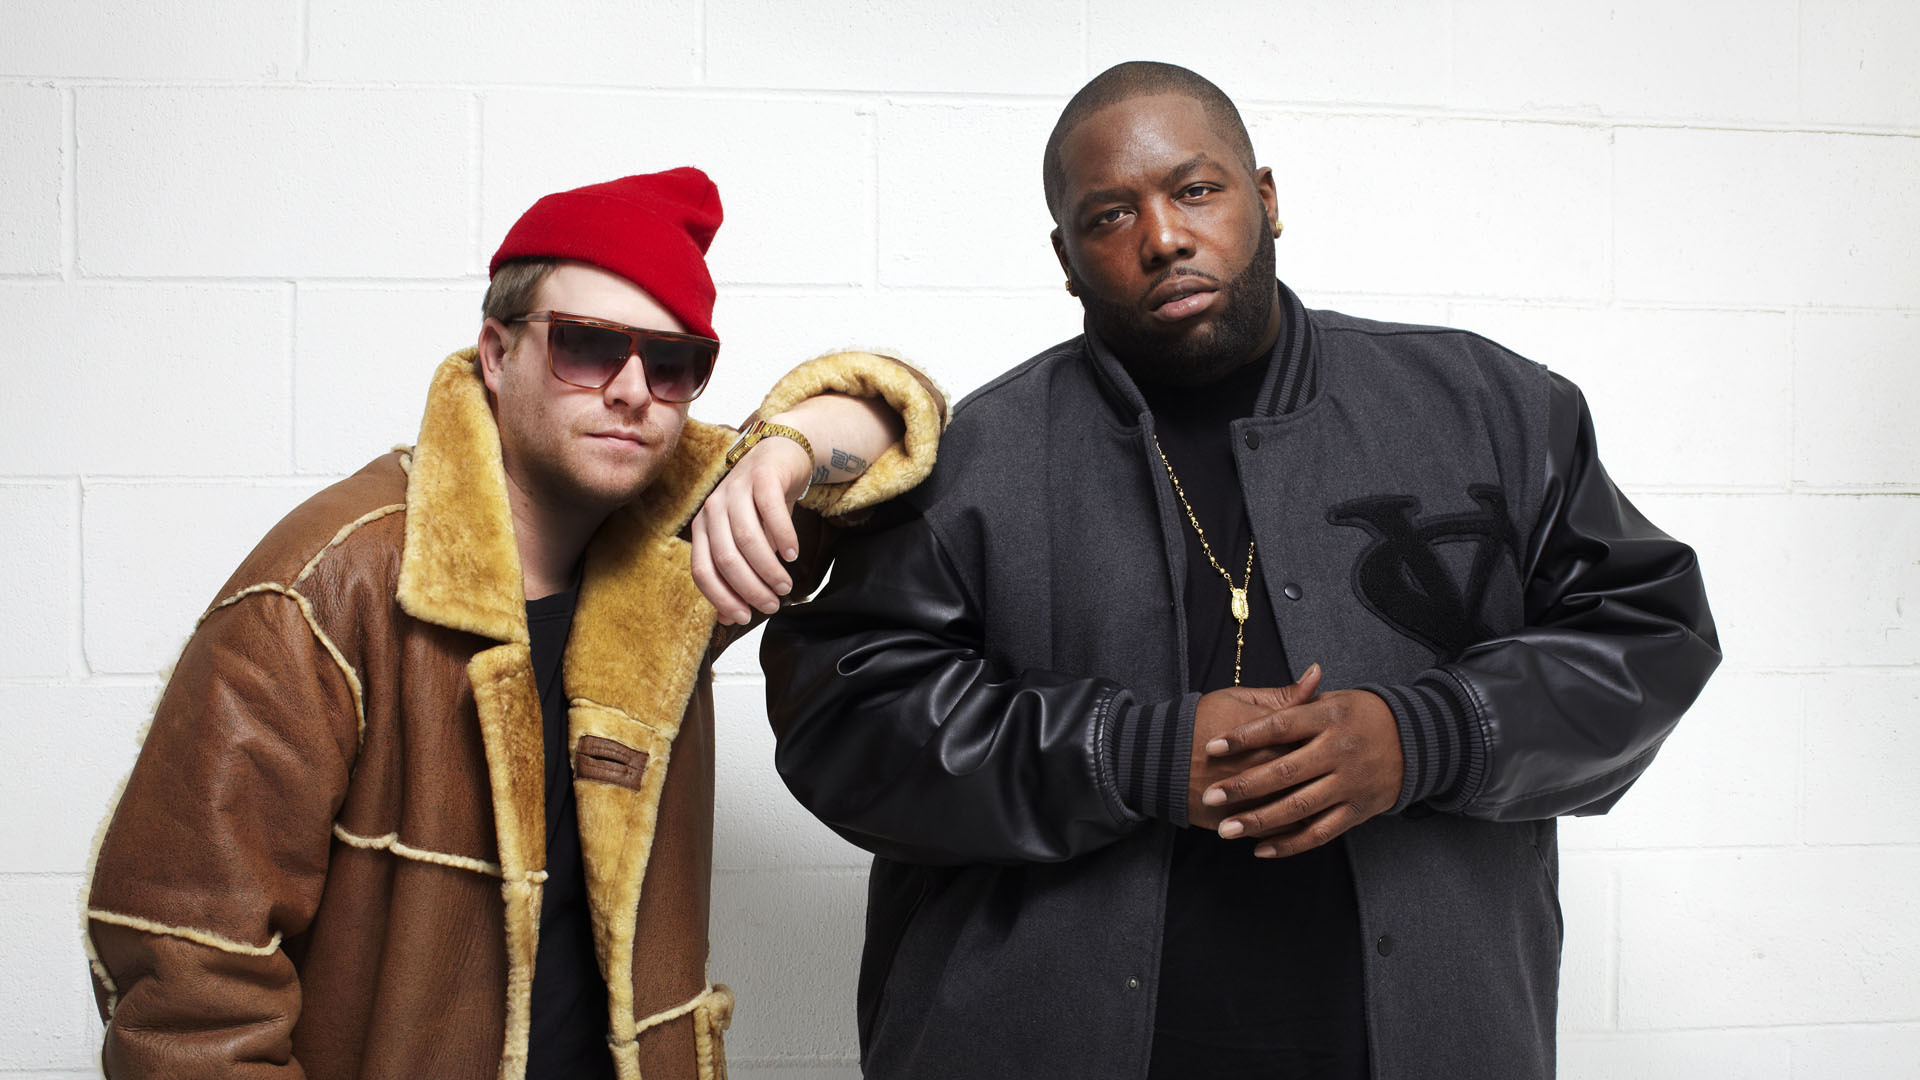 source: Run the Jewels